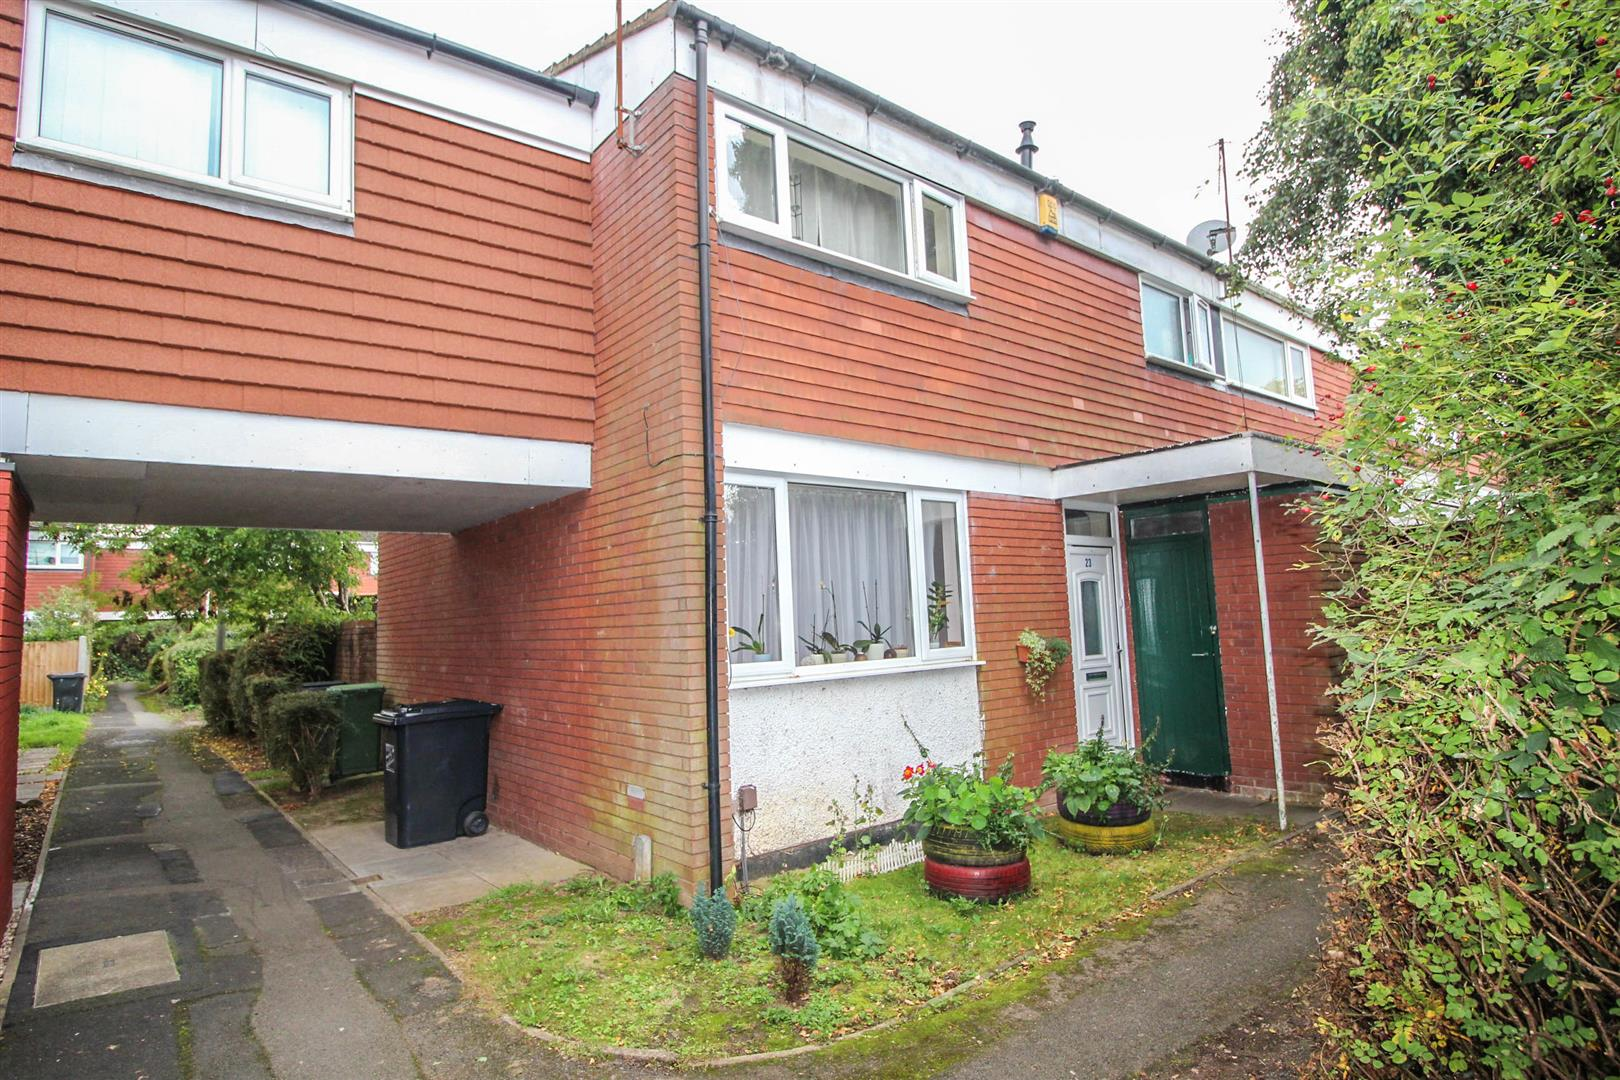 3 Bedrooms End Of Terrace House for sale in Acton Close, Redditch